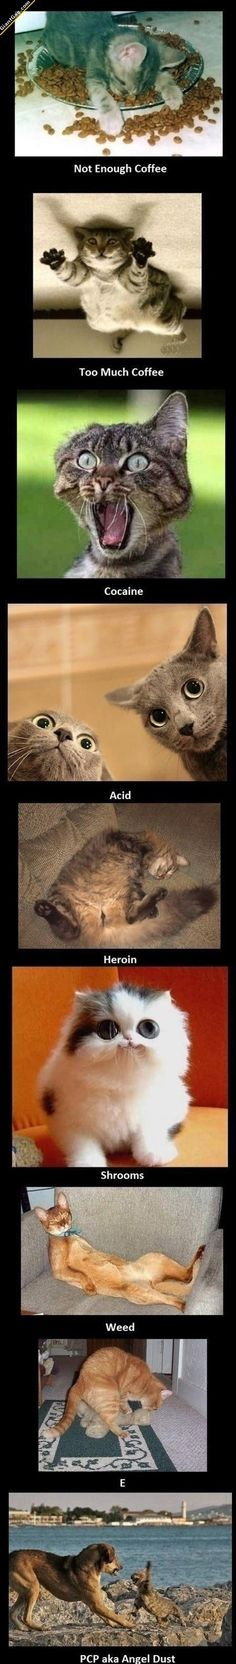 OMG , TO FUNNY !!Cats On Drugs | Click the link to view full image and description : )